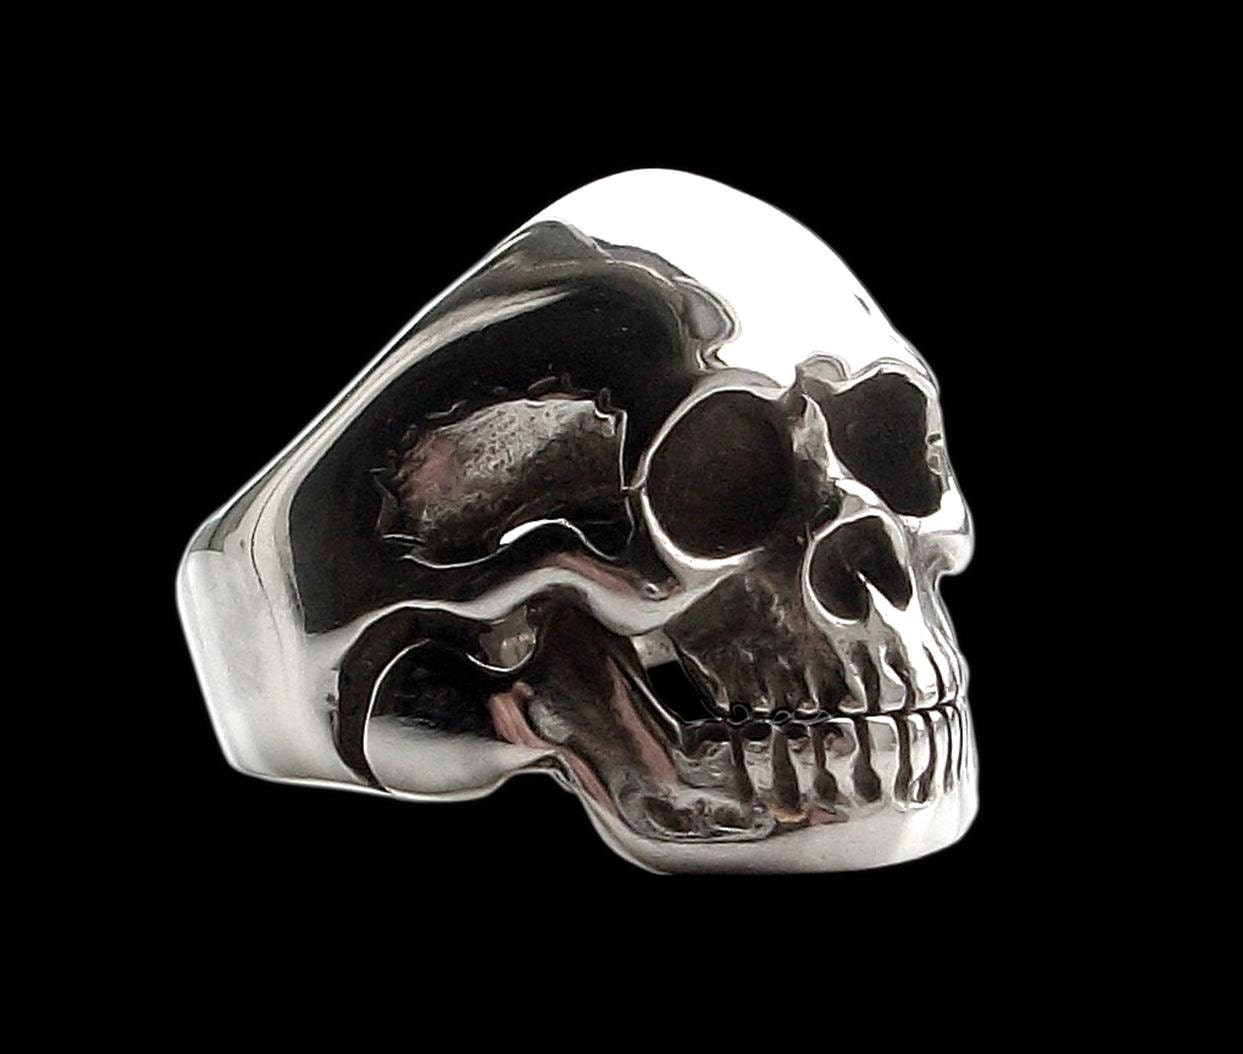 online rings ring steel indian with on stainless nose peach skull skeleton store blossom piece product